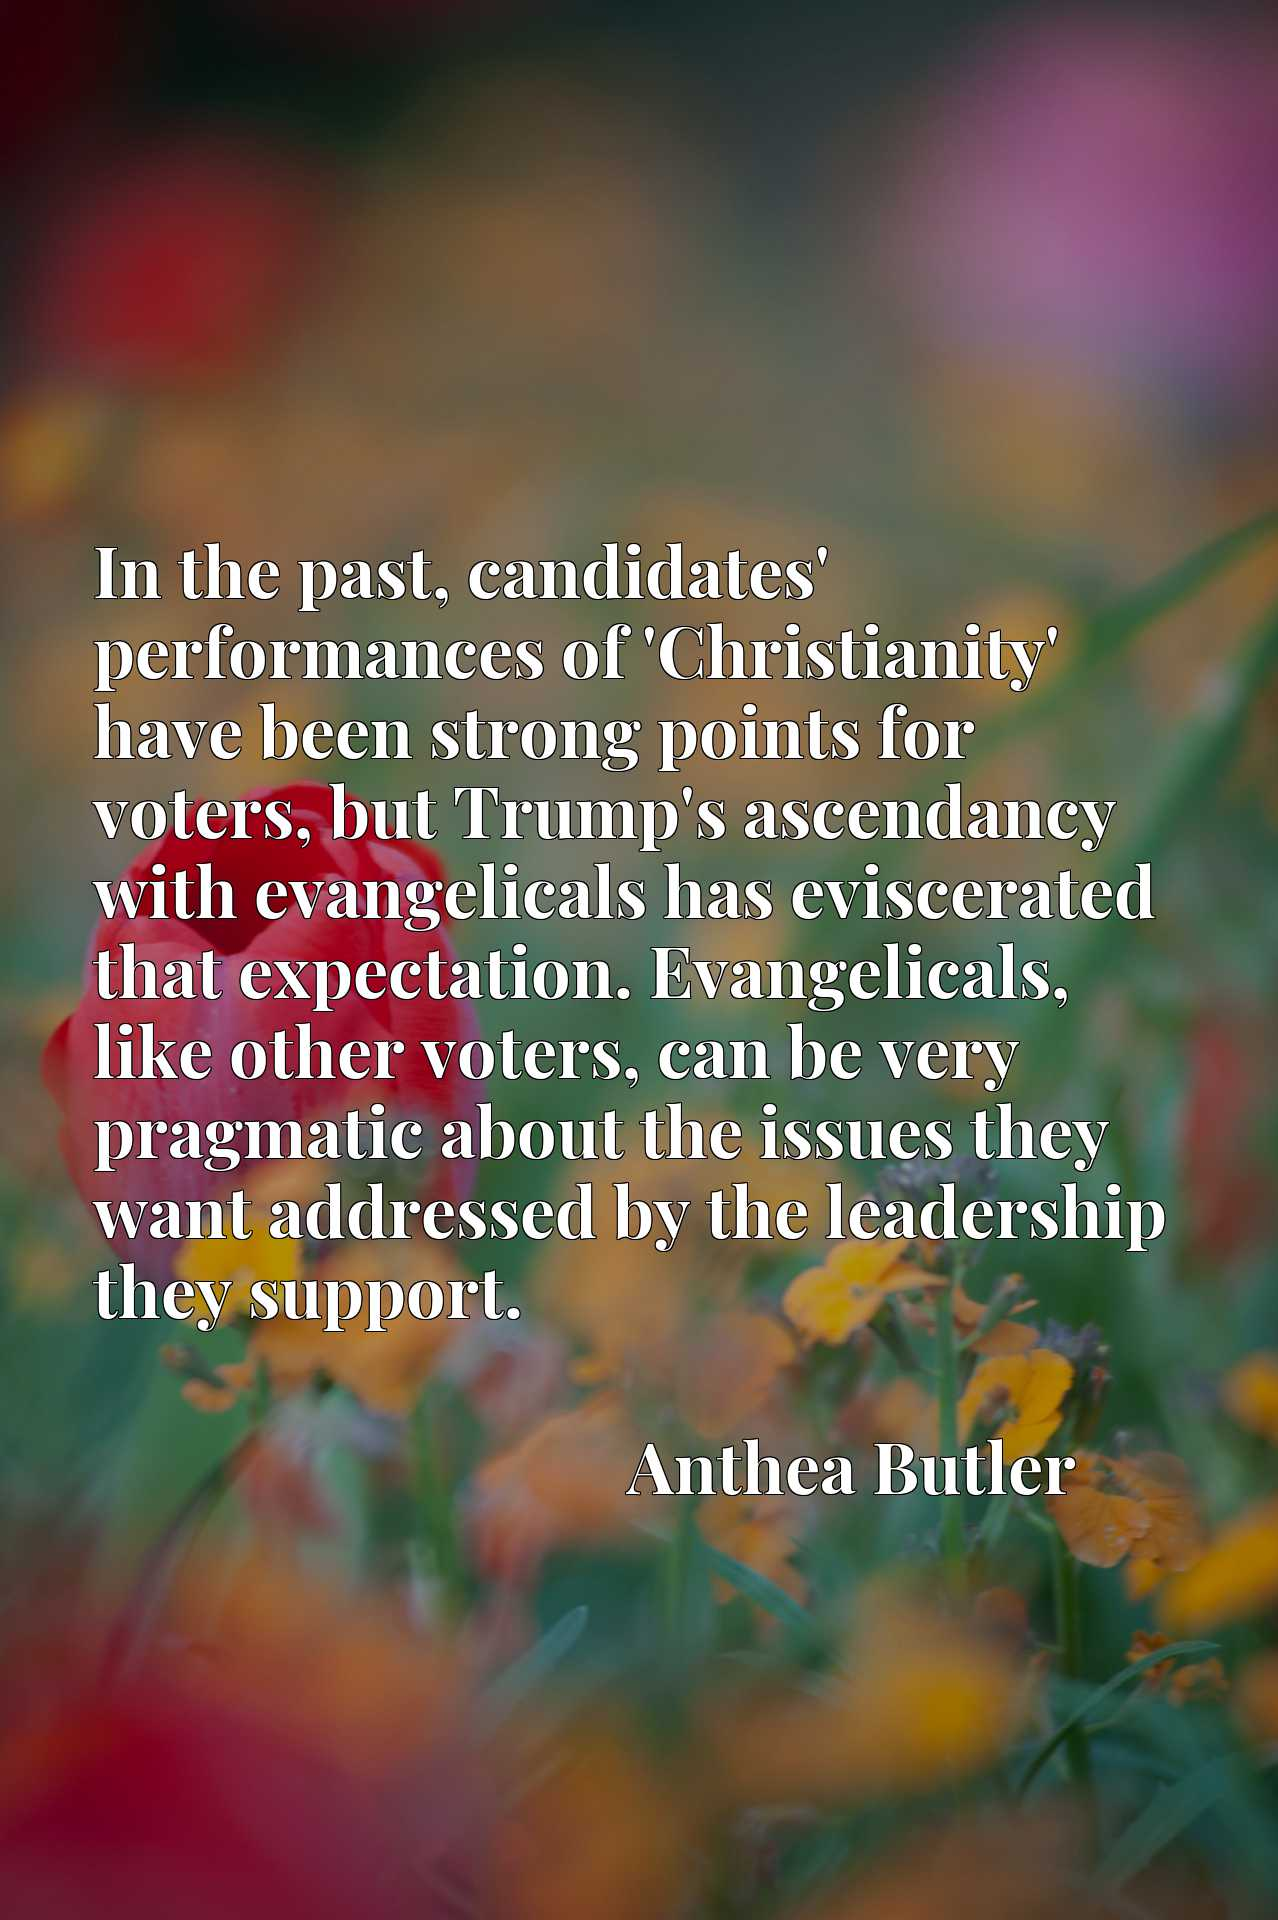 Quote Picture :In the past, candidates' performances of 'Christianity' have been strong points for voters, but Trump's ascendancy with evangelicals has eviscerated that expectation. Evangelicals, like other voters, can be very pragmatic about the issues they want addressed by the leadership they support.